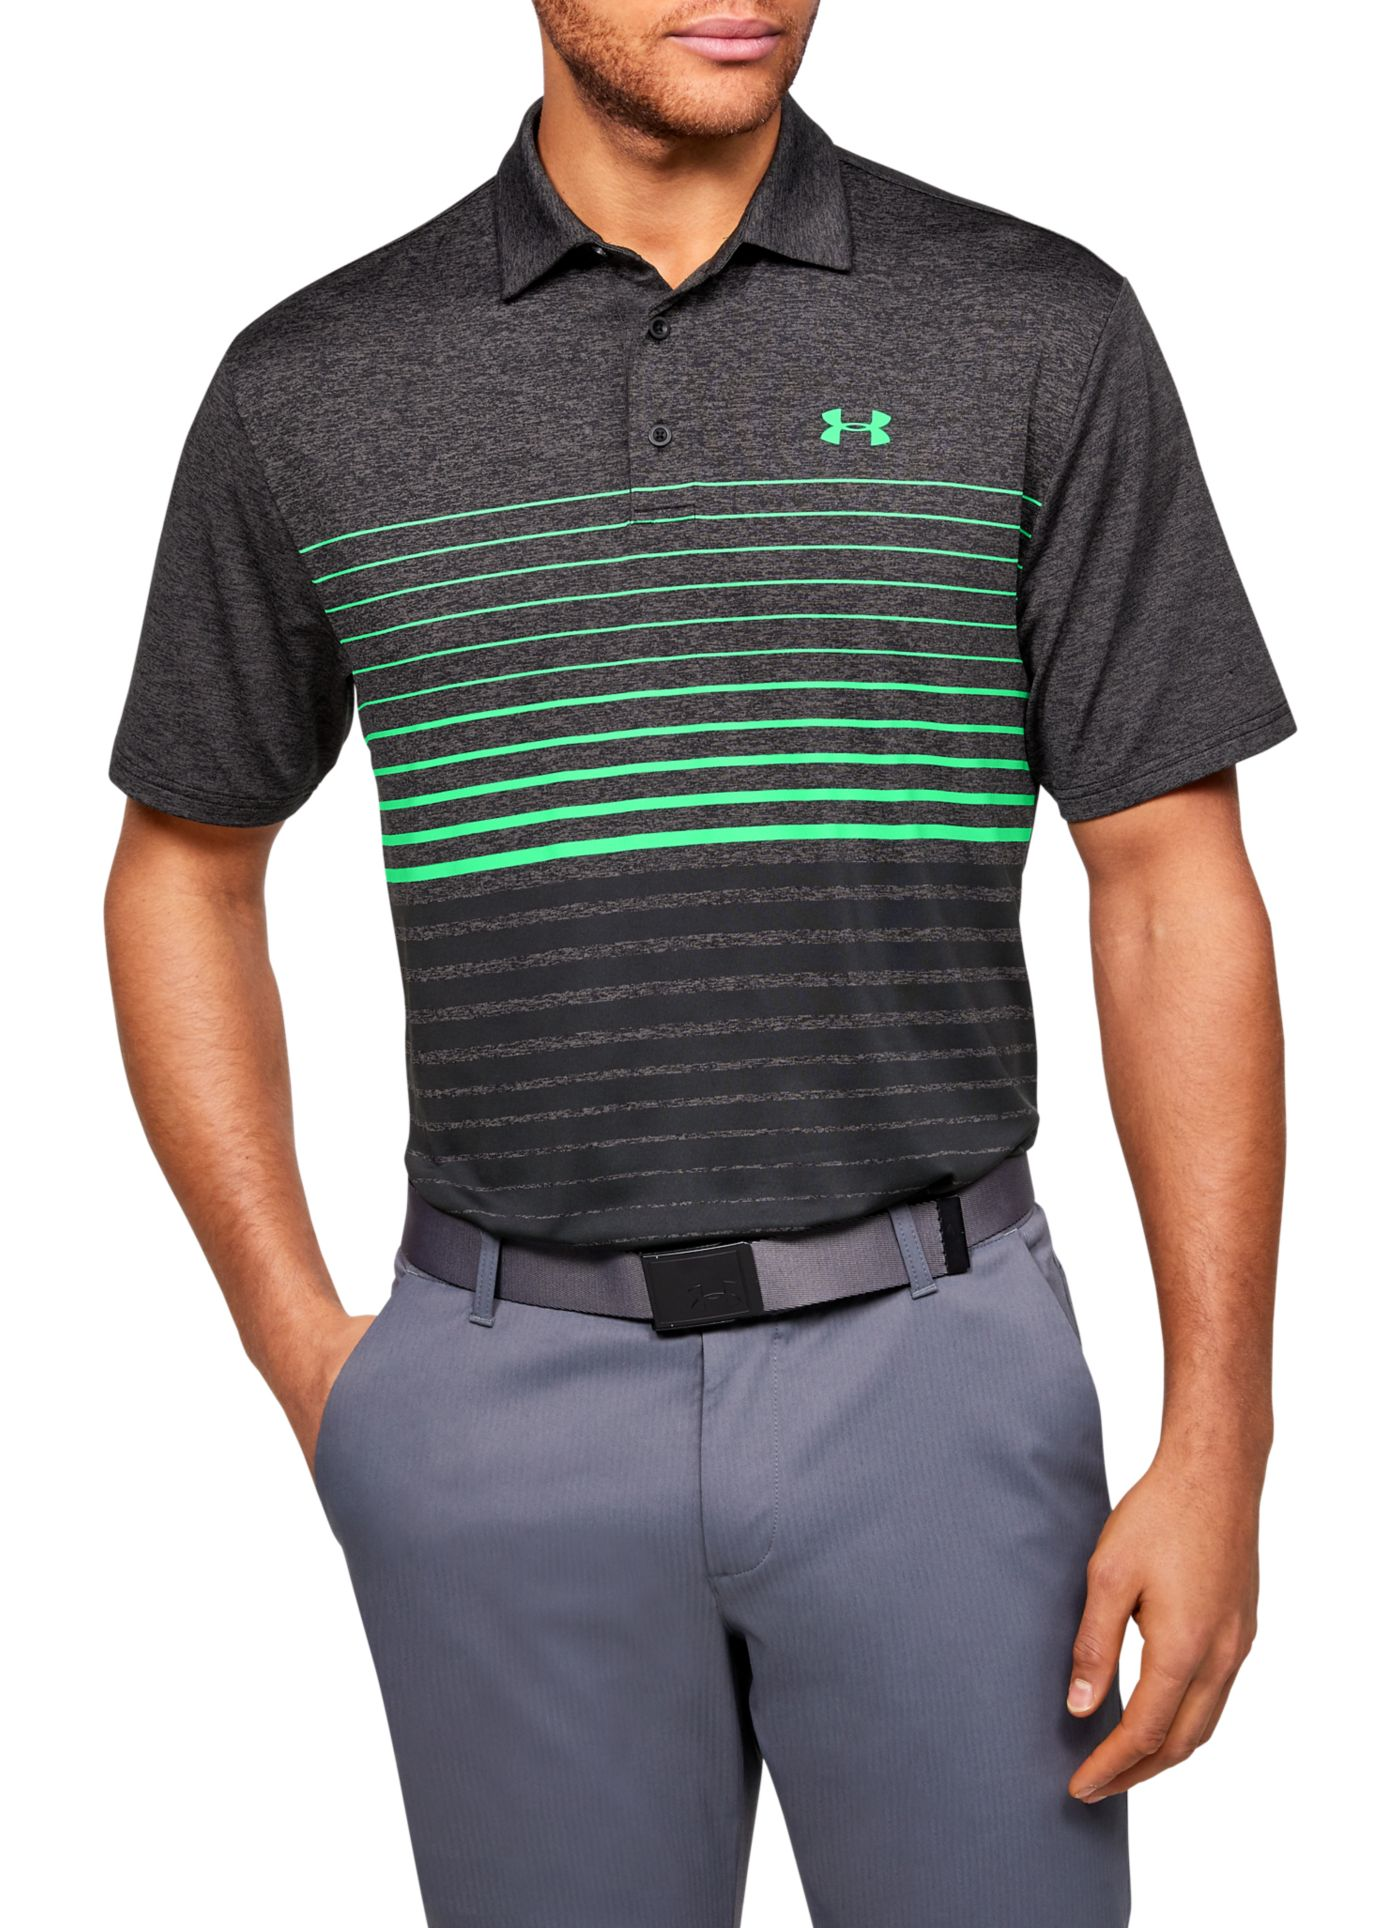 Under Armour Men's Playoff 2.0 Stripe Golf Polo